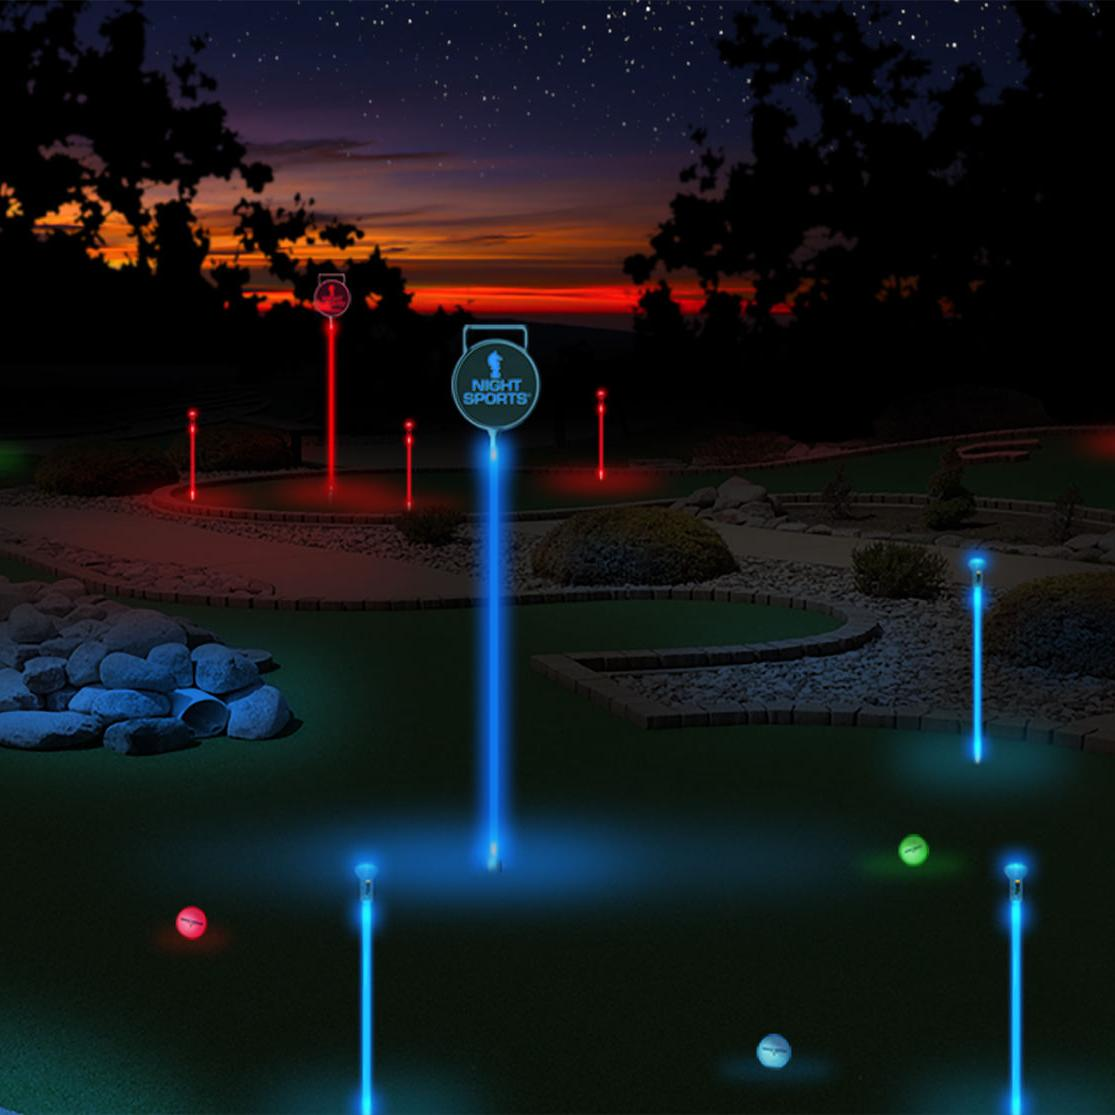 Day 3 | @WisDotGolf's 12 Days of Christmas Golf Gift Ideas: Night Sports USA's Lighted Backyard Pitch & Putt